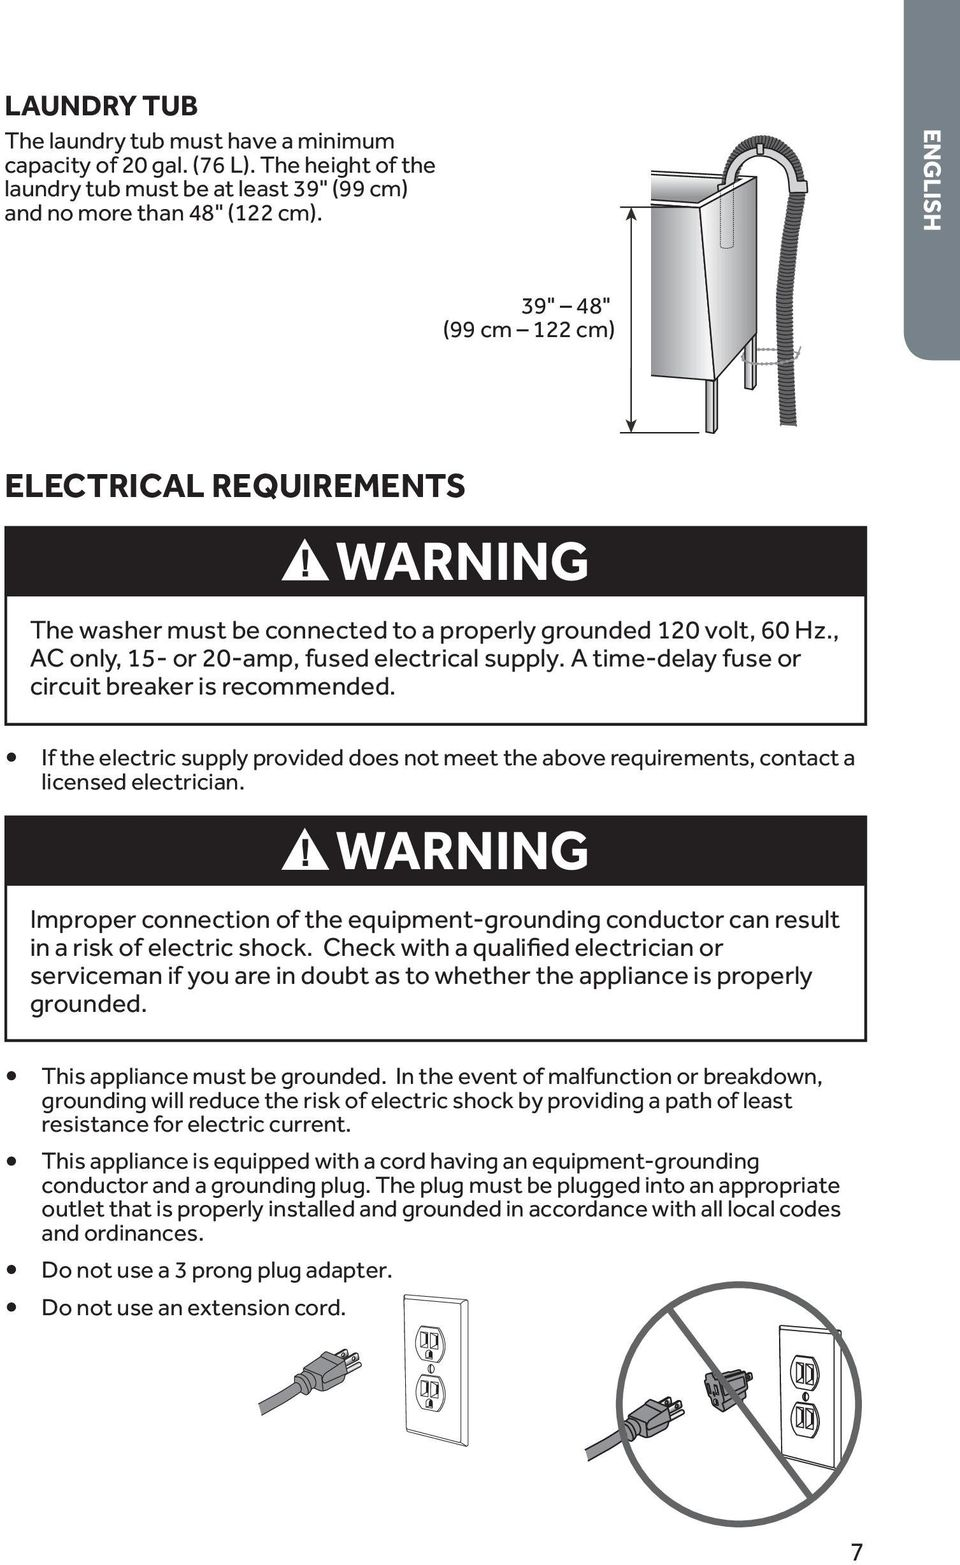 A time-delay fuse or circuit breaker is recommended. If the electric supply provided does not meet the above requirements, contact a licensed electrician.